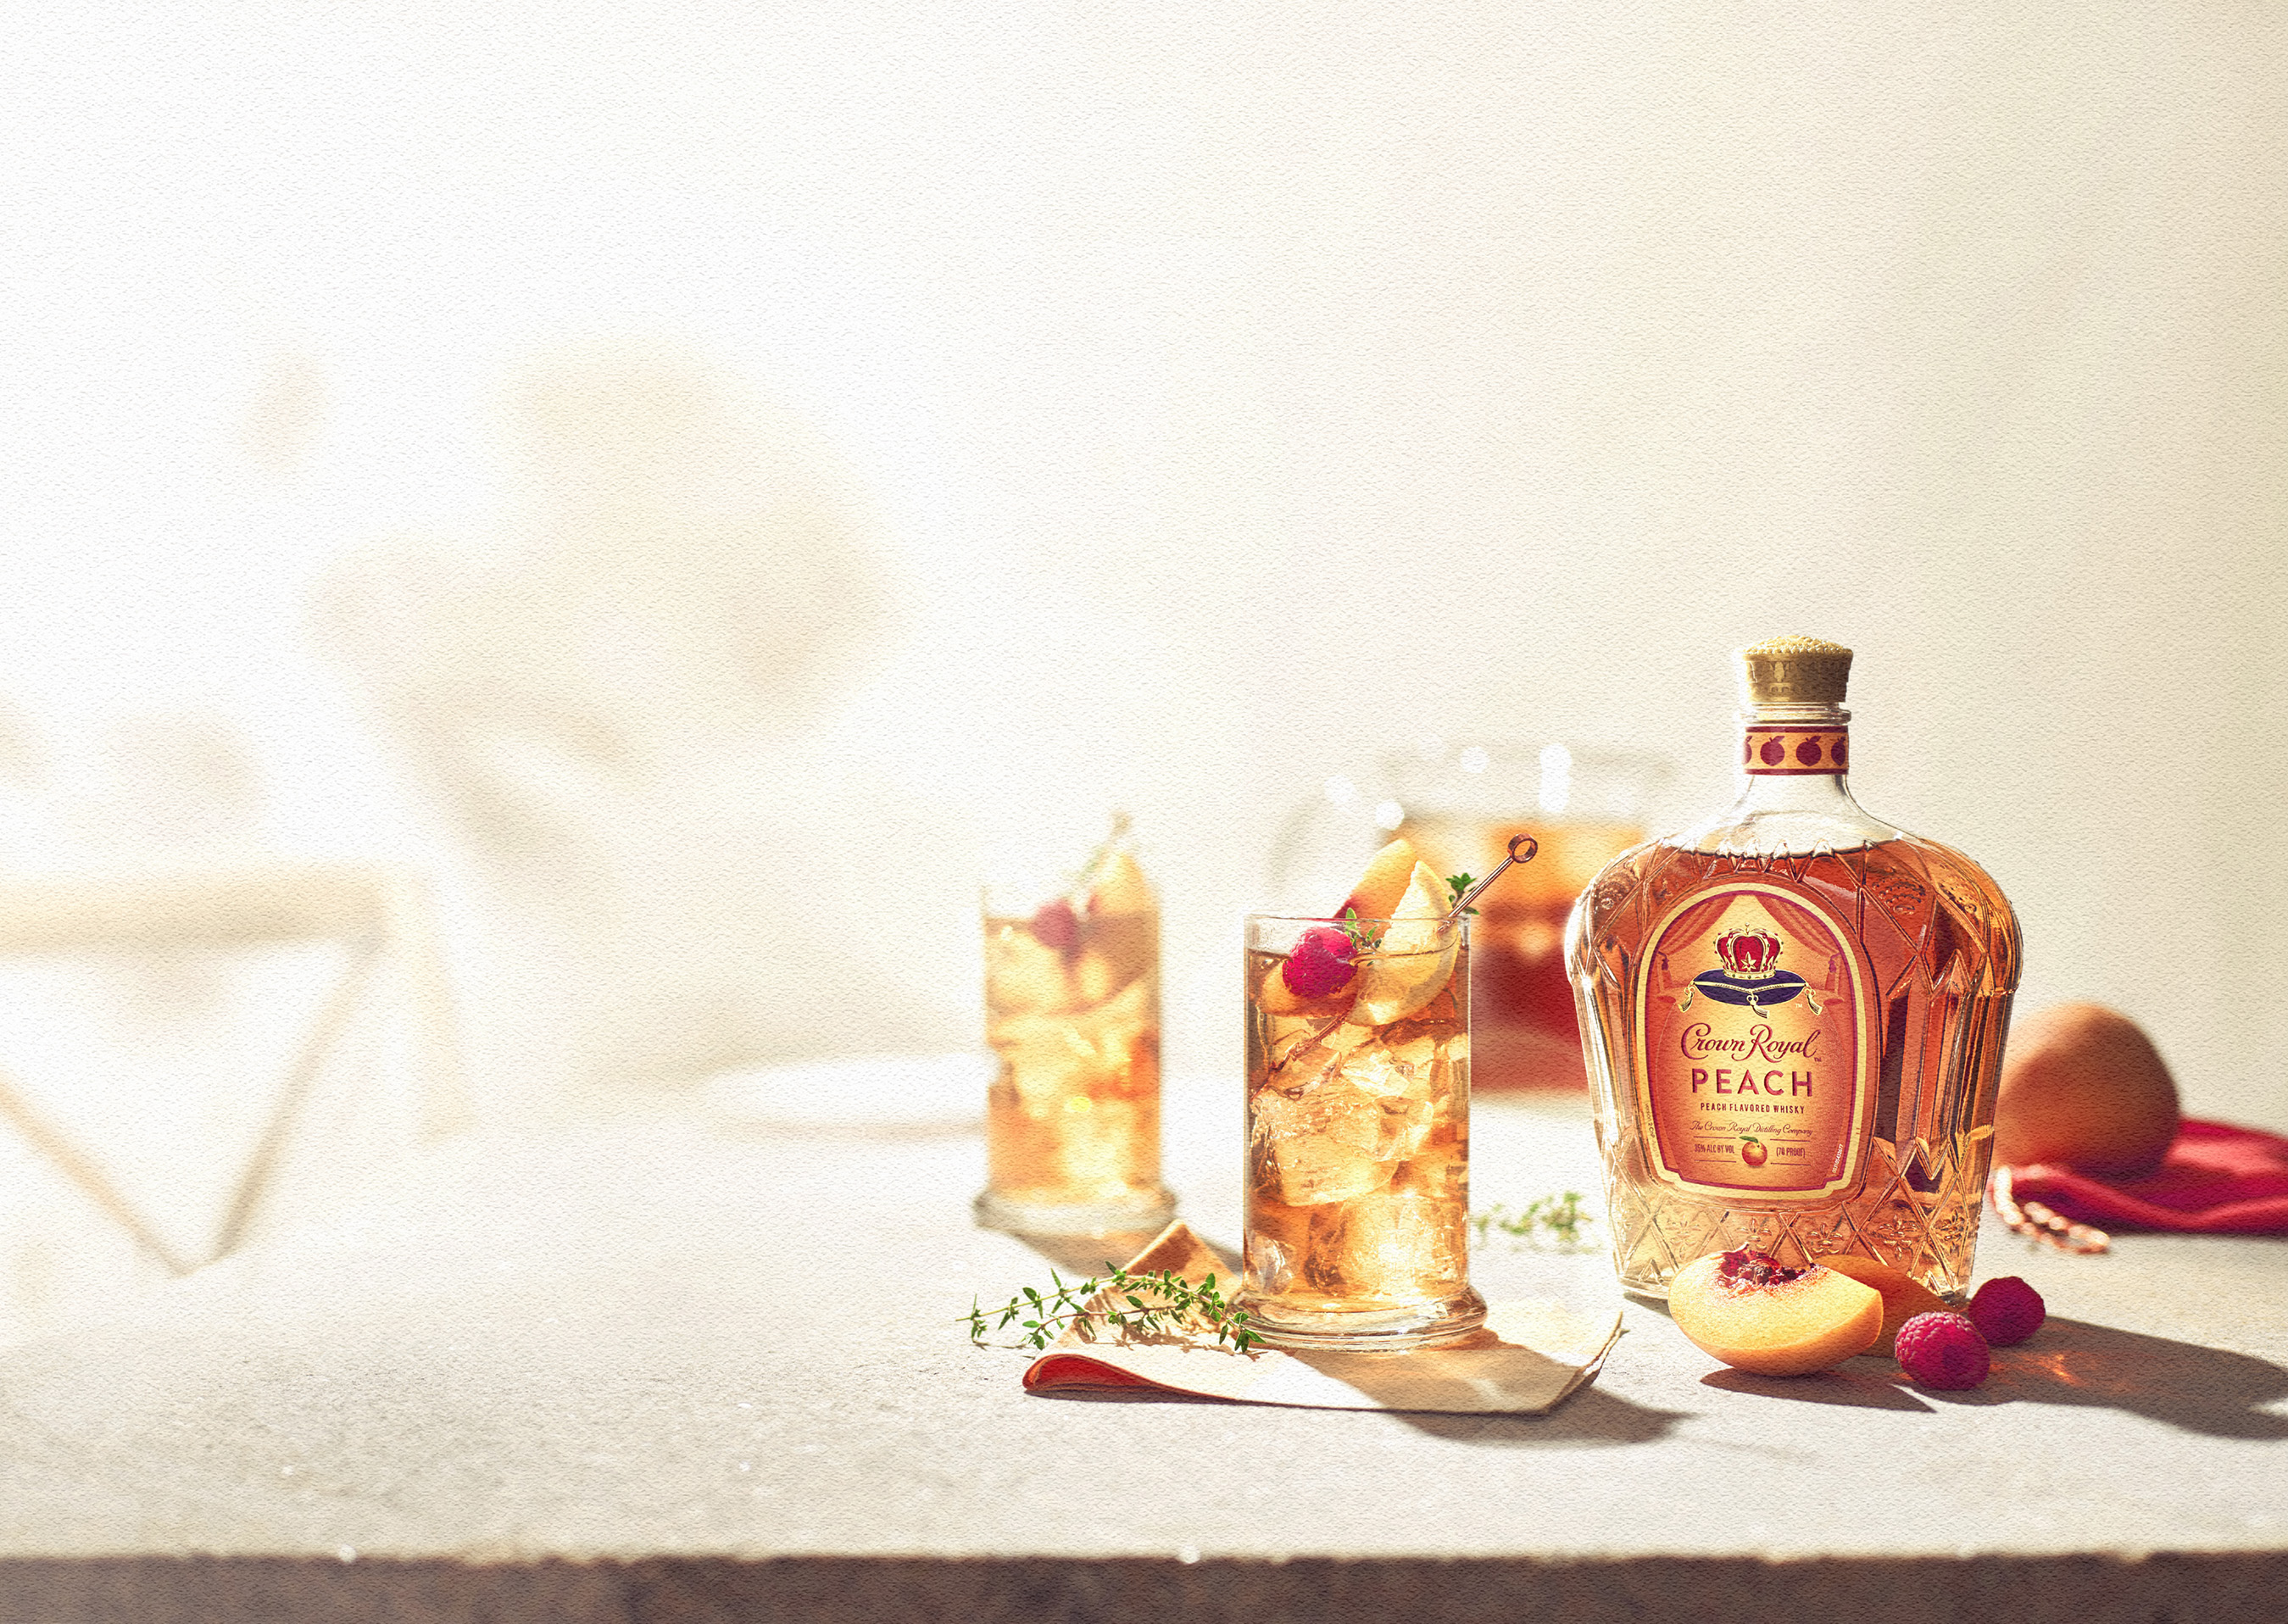 Crown Royal Peach is an easy-sipping whisky, perfect for spending time with your friends and family.